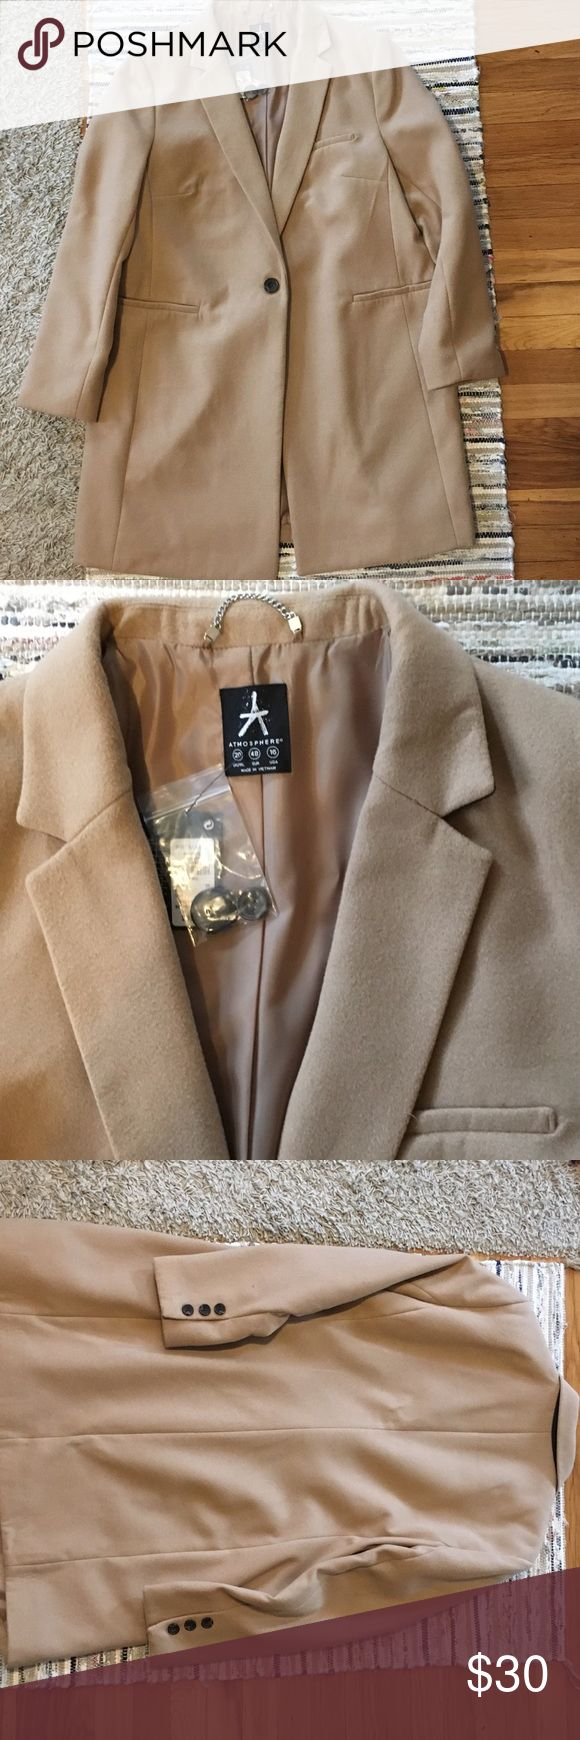 Camel long jacket Never worn jacket, beautiful, does not look cheap, one button. Nice camel color. primark Jackets & Coats